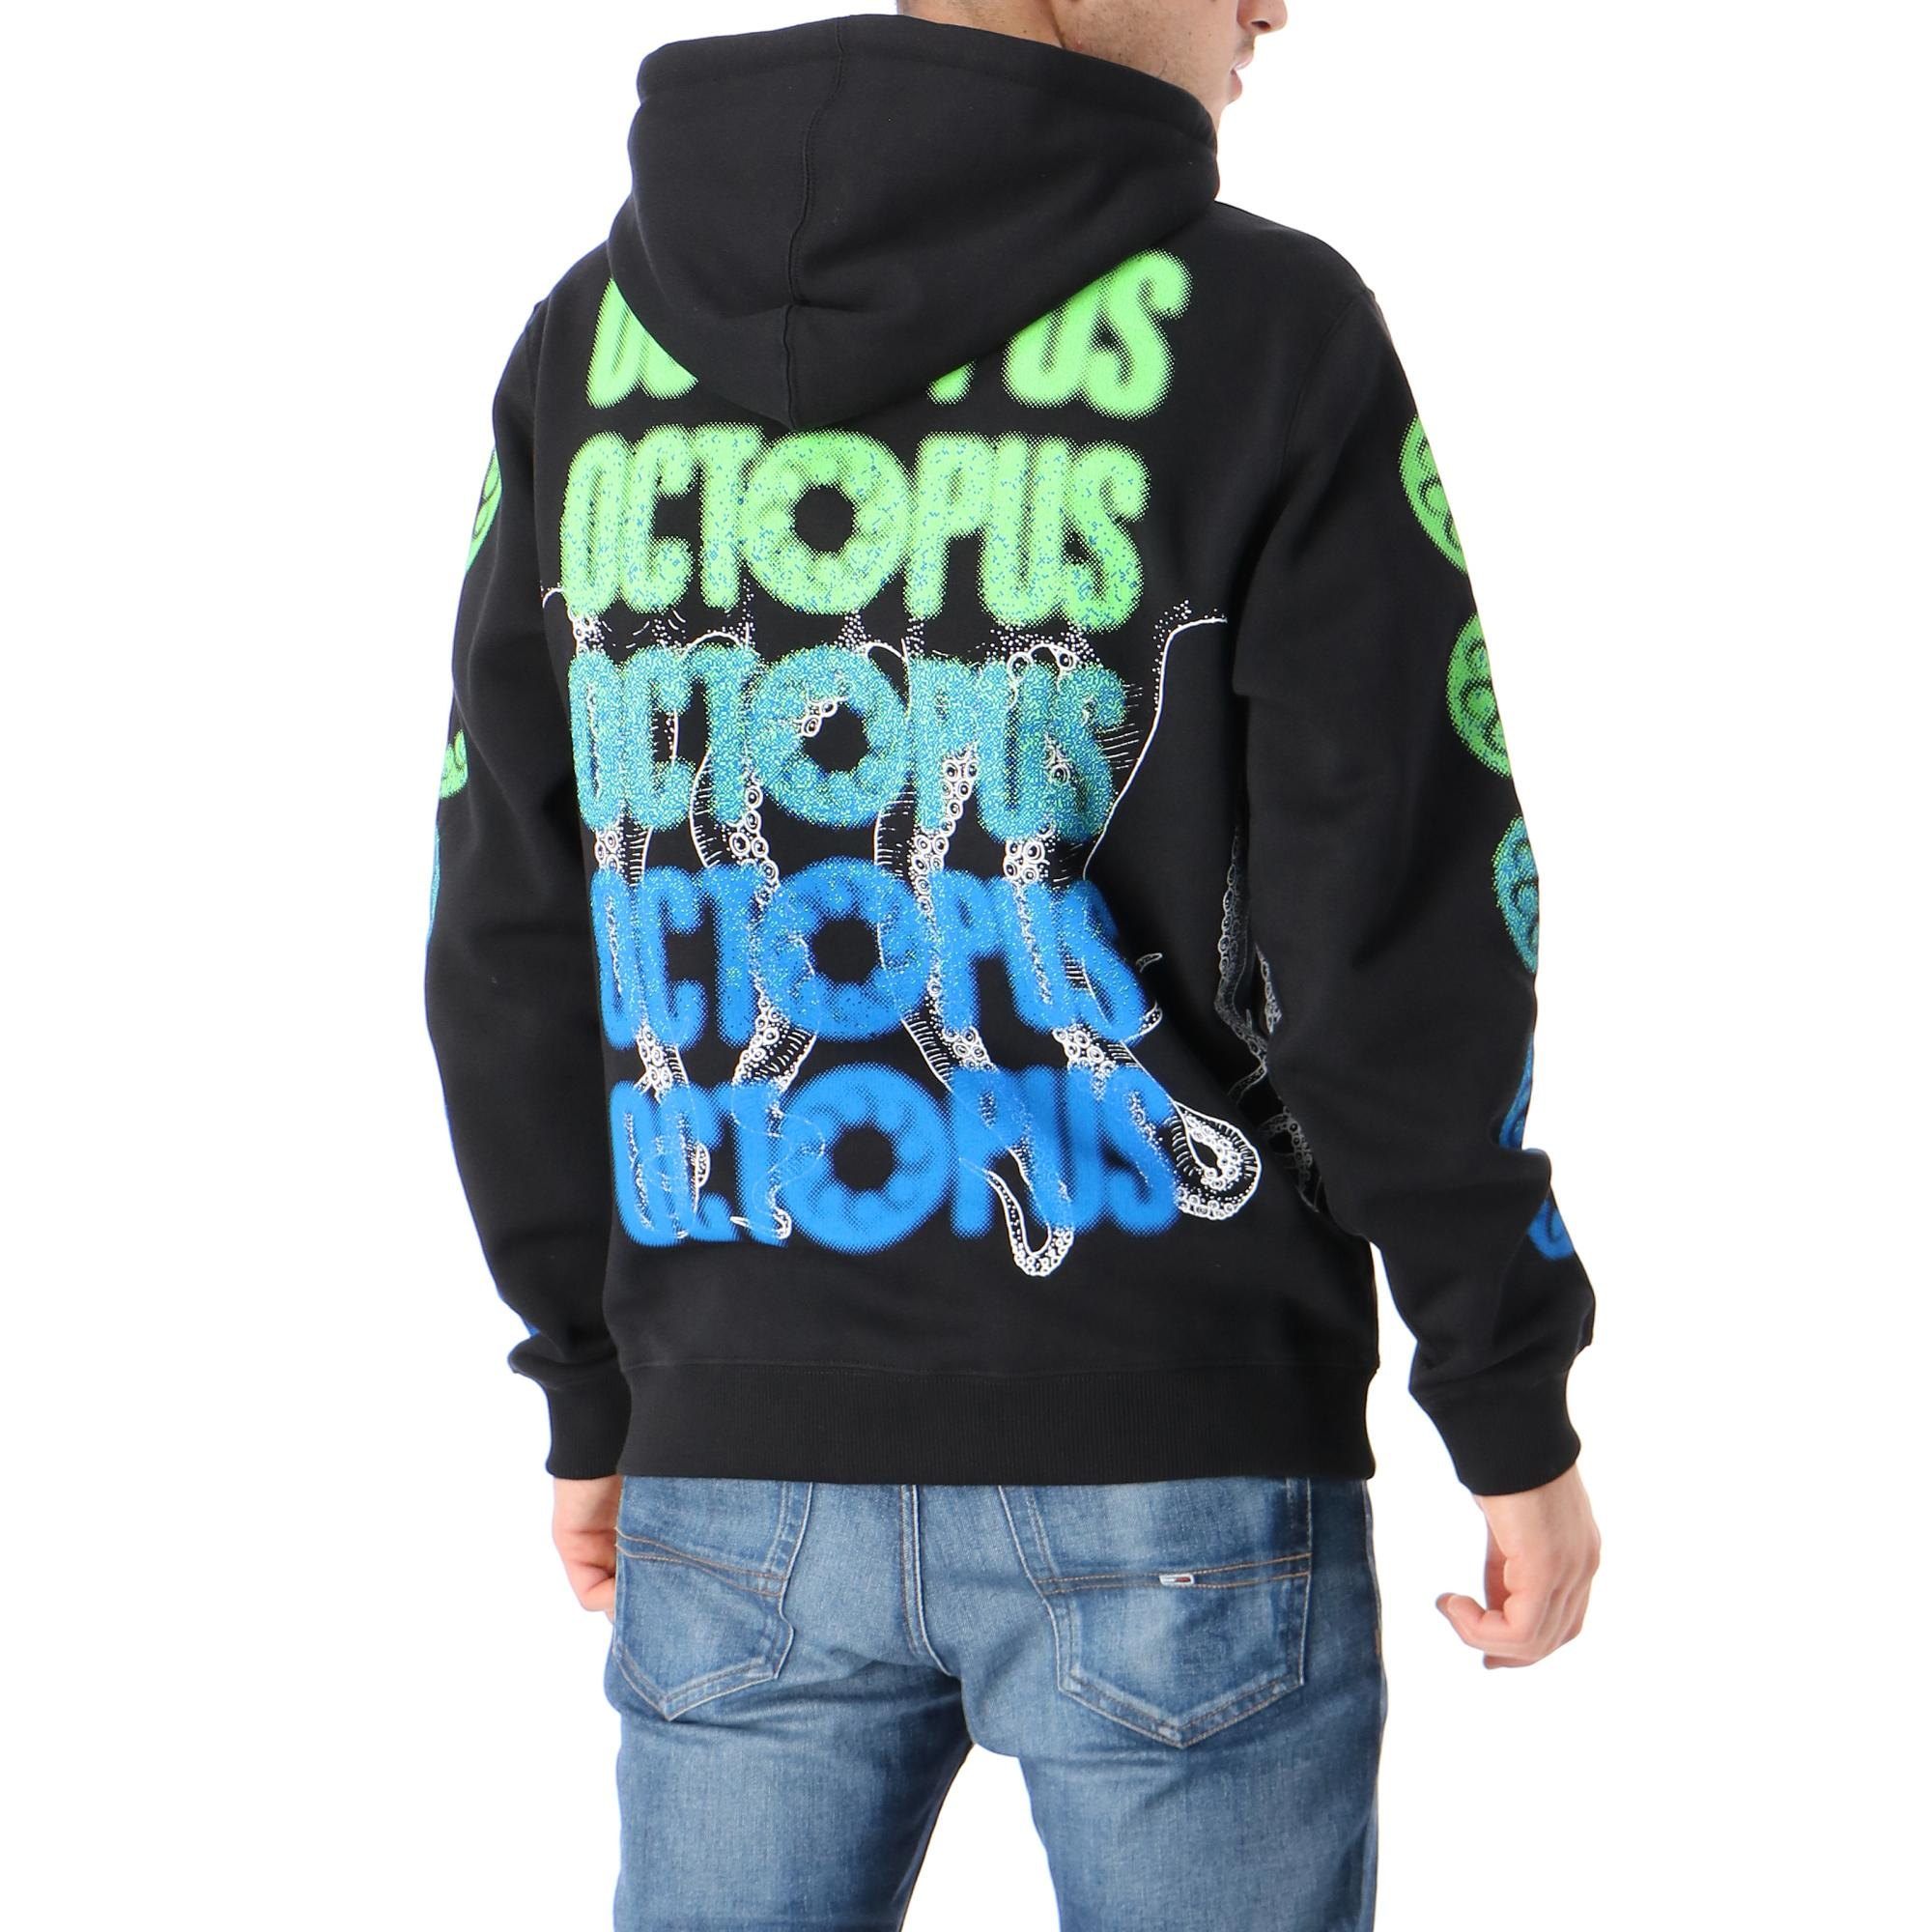 Octopus Blurred Crew Black